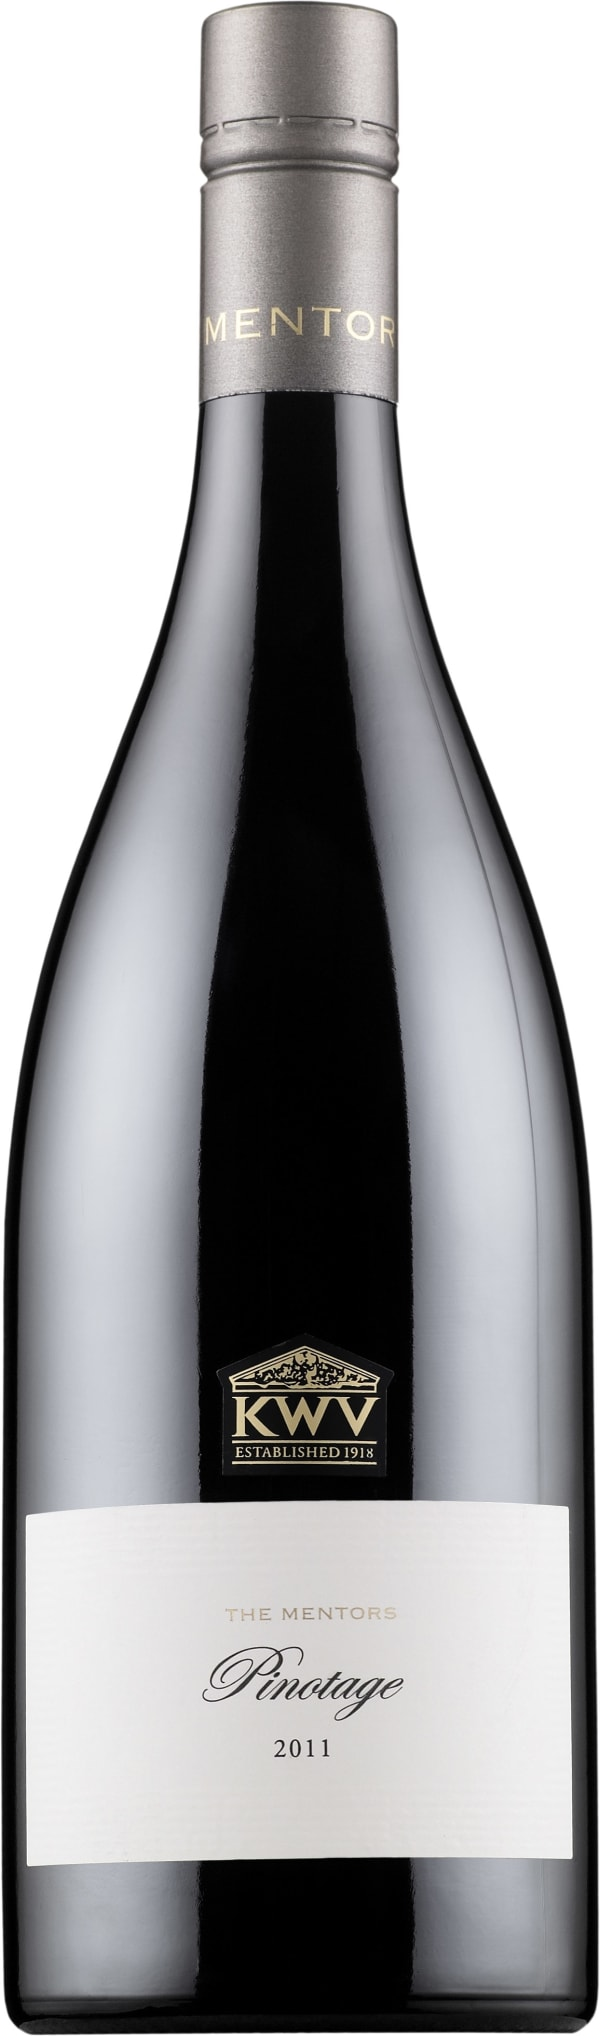 KWV The Mentors Pinotage 2014